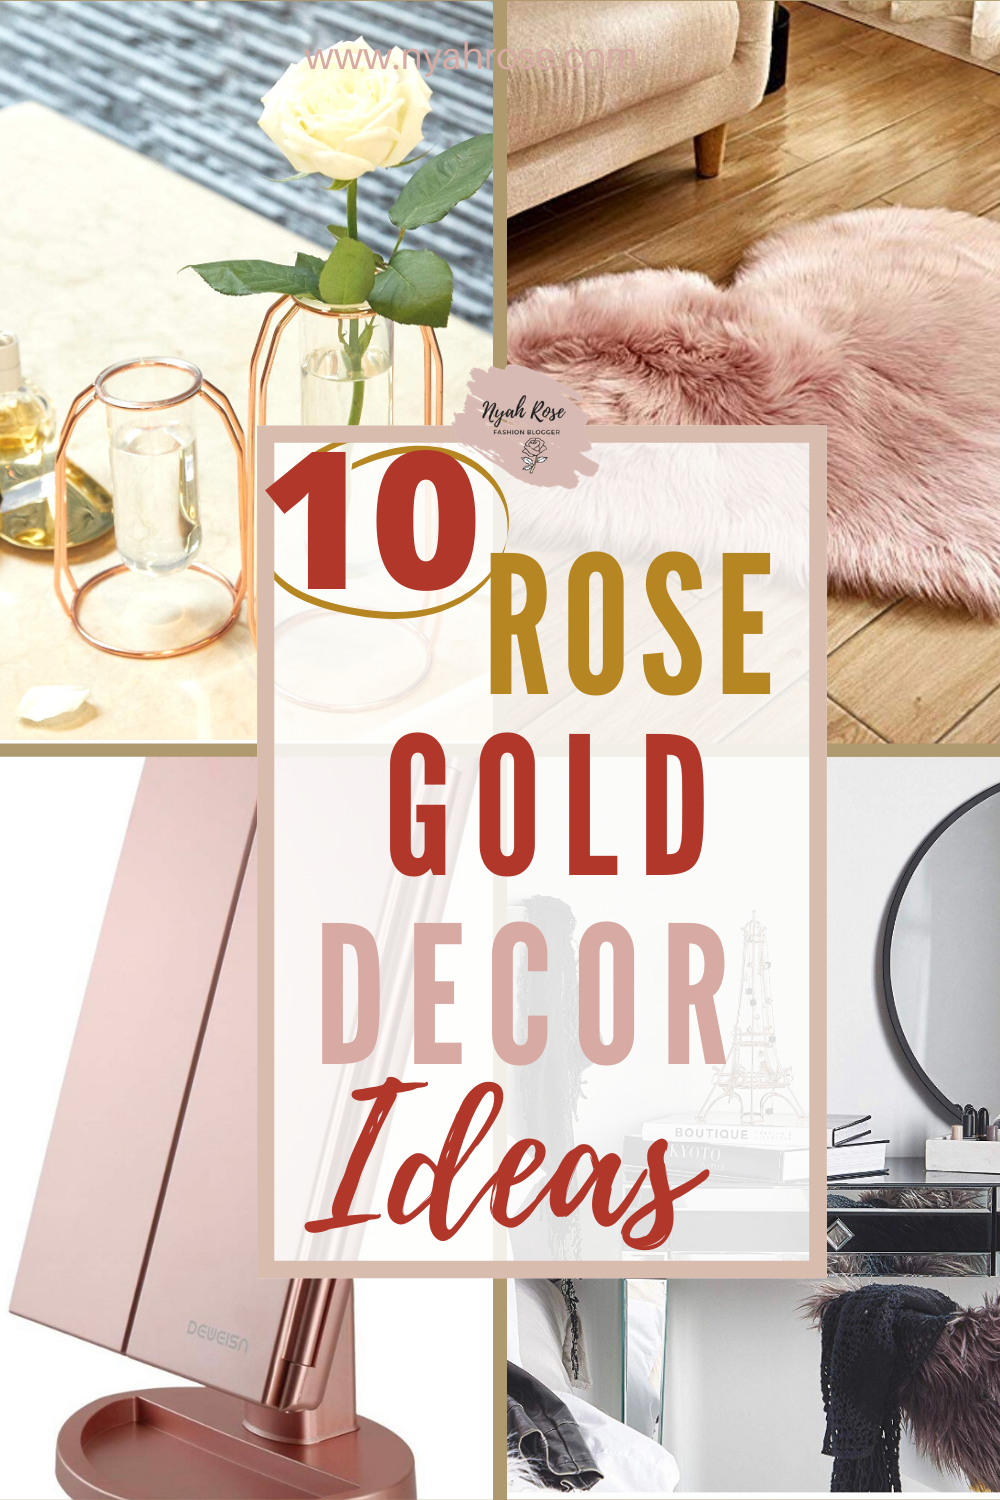 Love Rose Gold? Here are some rose gold room decor ideas for your bedroom and Living rooms.    #rosegolddiy #rosegoldkitchen #rosegoldparty #roomdecorideas #roomdecorliving #bedroomdecor #roomdecor aesthetic